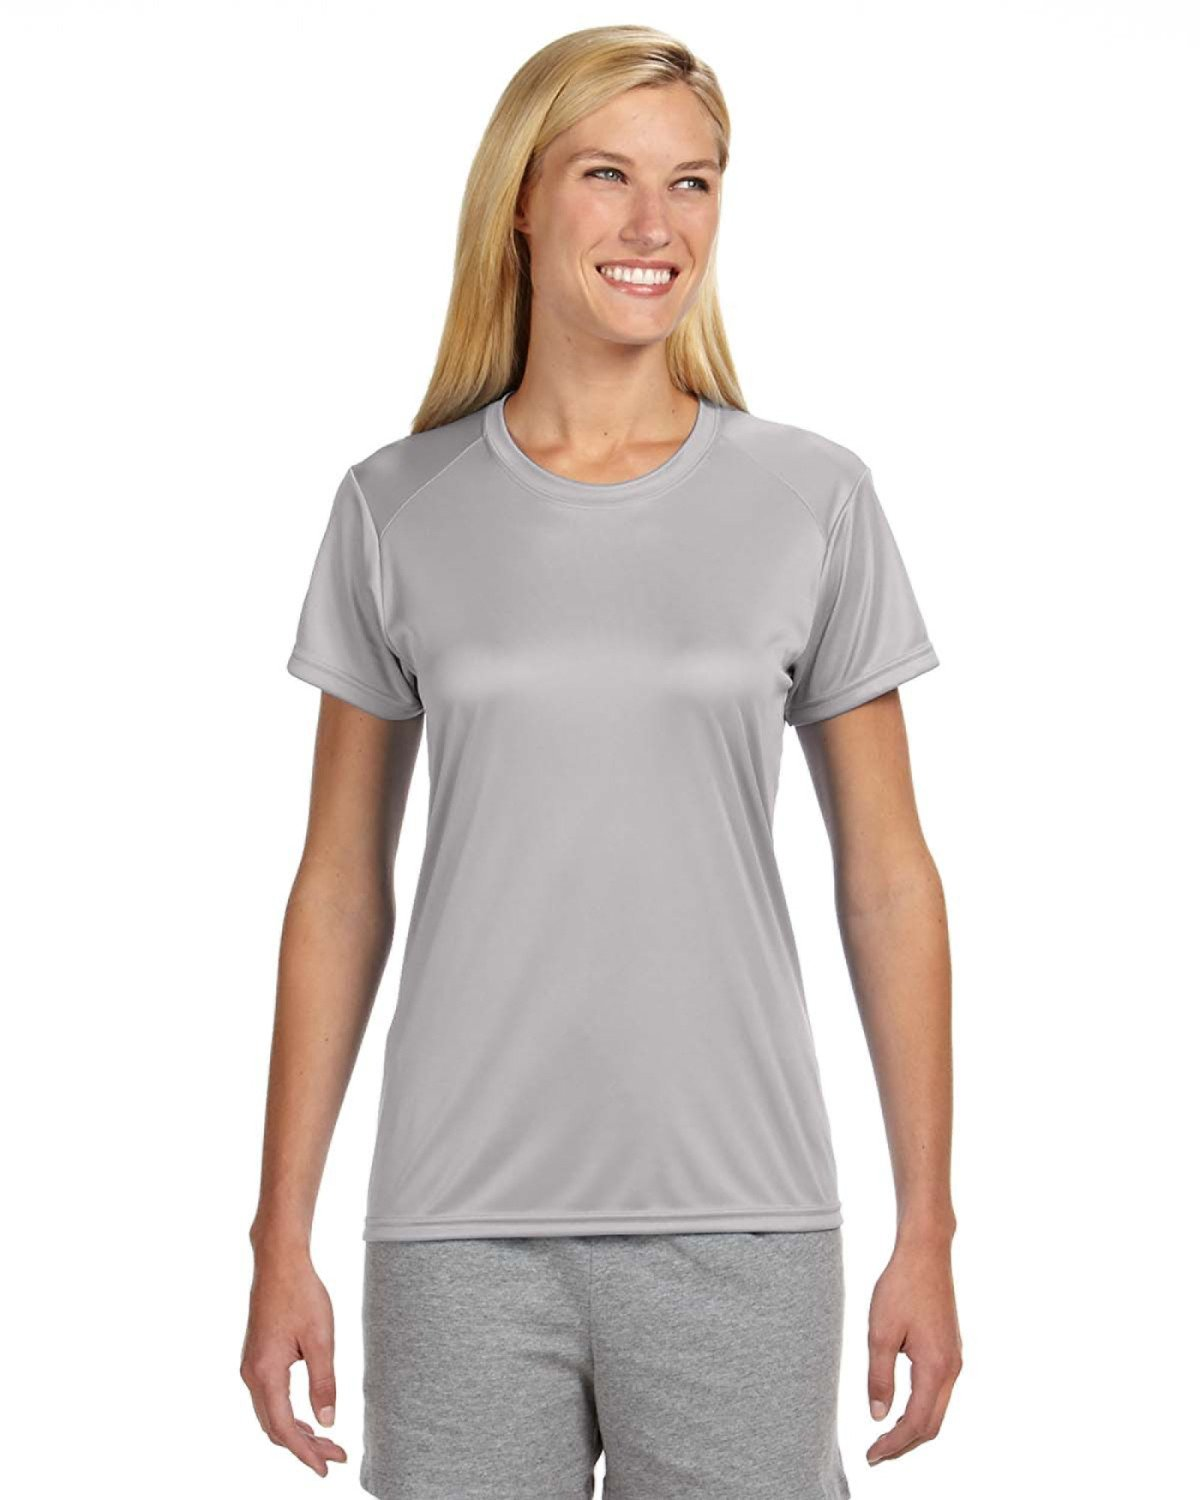 A4 Ladies' Cooling Performance T-Shirt SILVER